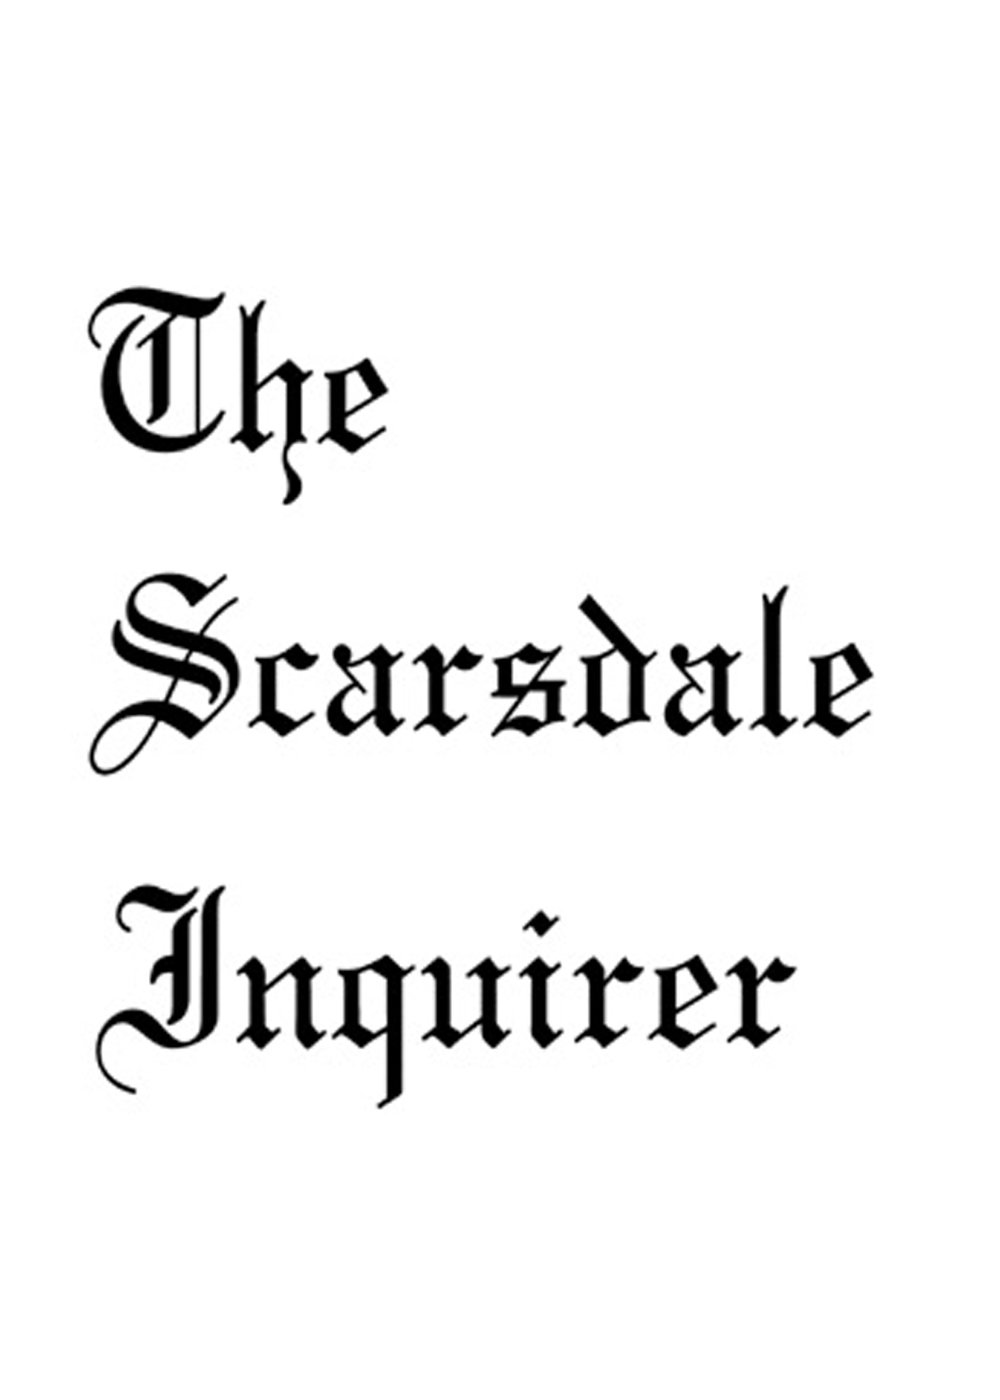 Giancarlo Studio Furniture Press The Scarsdale Inquirer.jpg